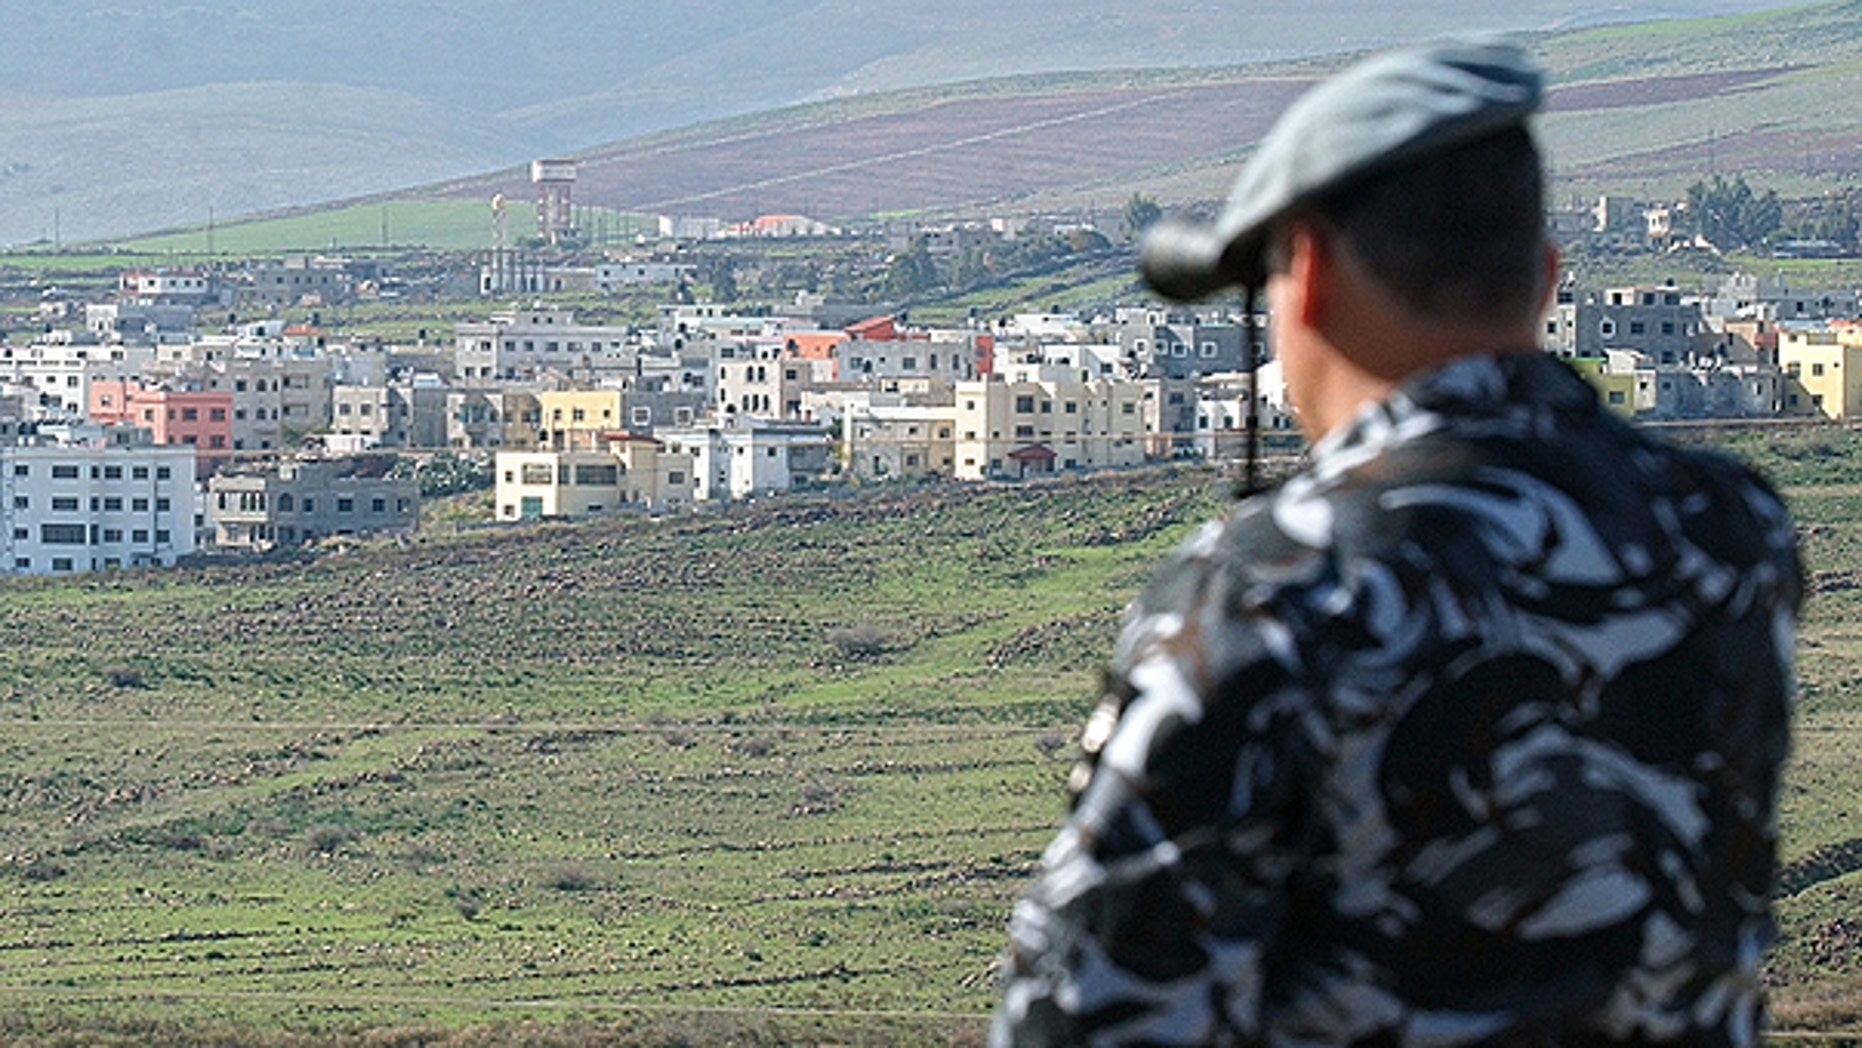 In this file photo taken on Jan. 3, 2006, a Lebanese security officer looks through binoculars at the Israeli part of the border village of Ghajar from the southern Lebanese village of Abbassiyeh in Lebanon.